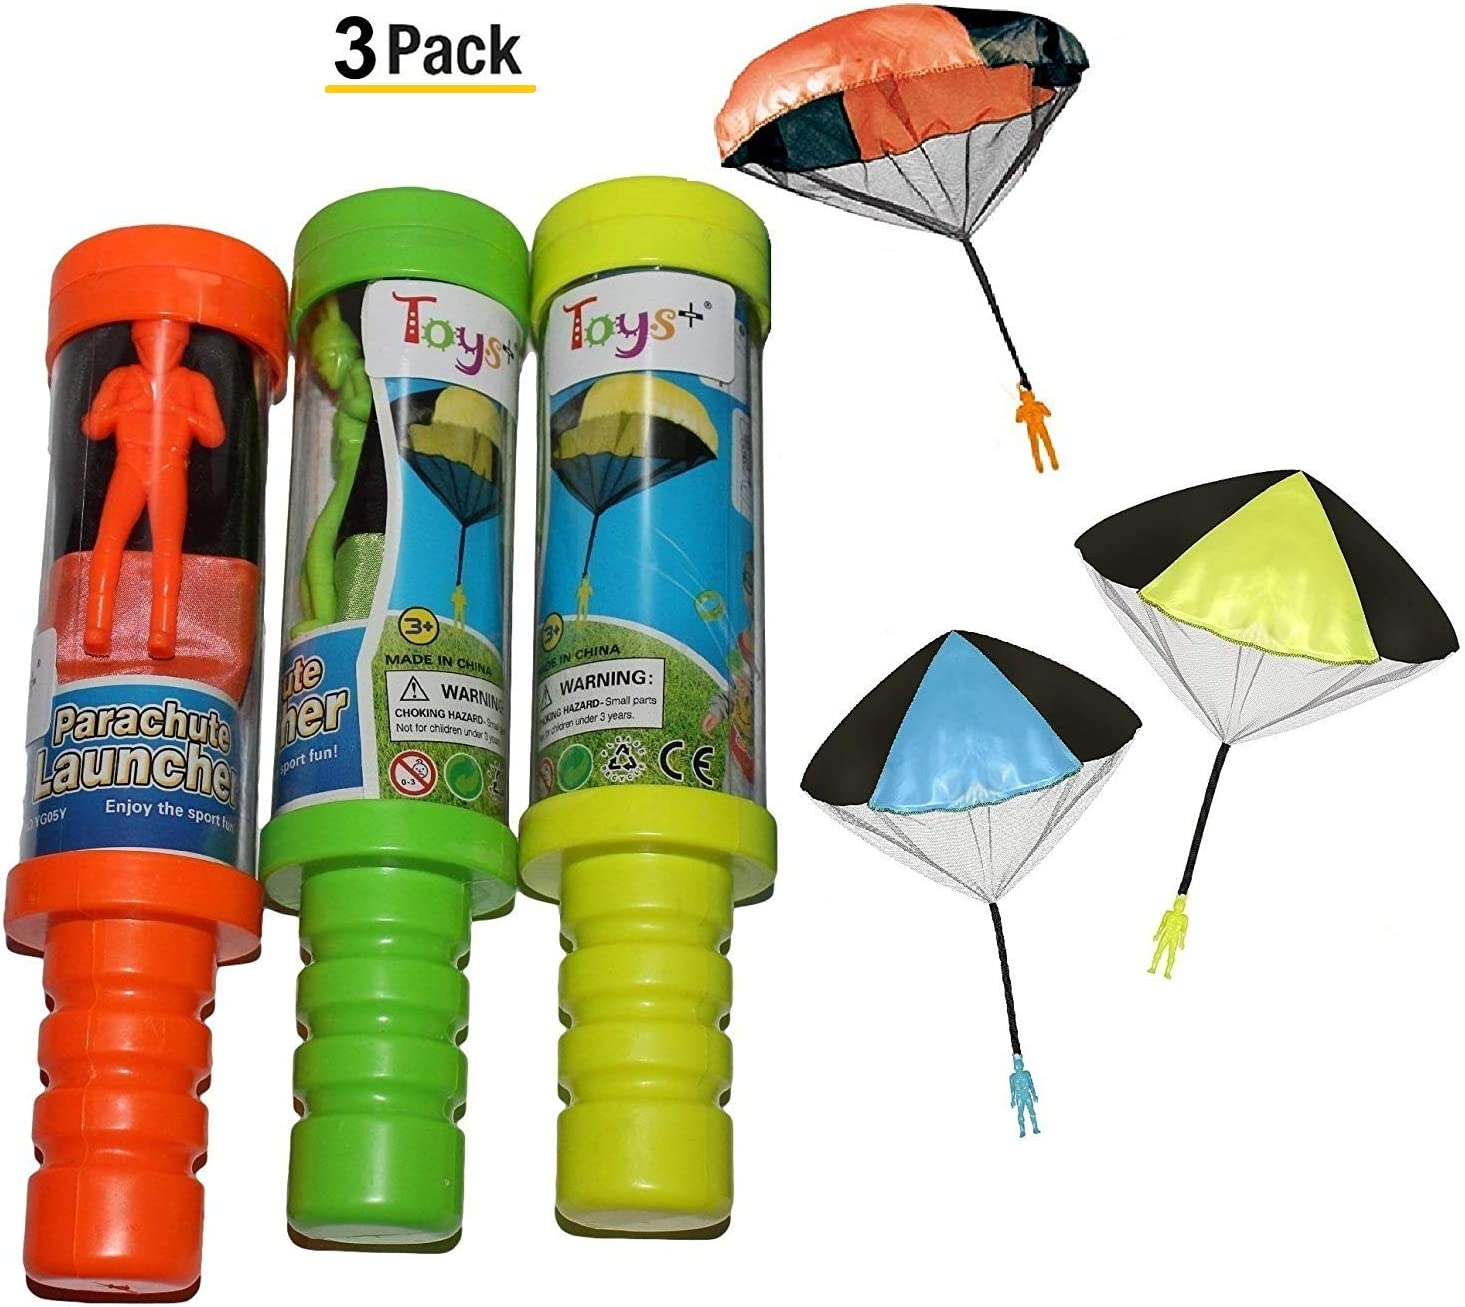 Toys+ Skydiver Parachute Men 3 Piece Set- Tangle Free with Launcher containers (Colors and Styles May Vary)